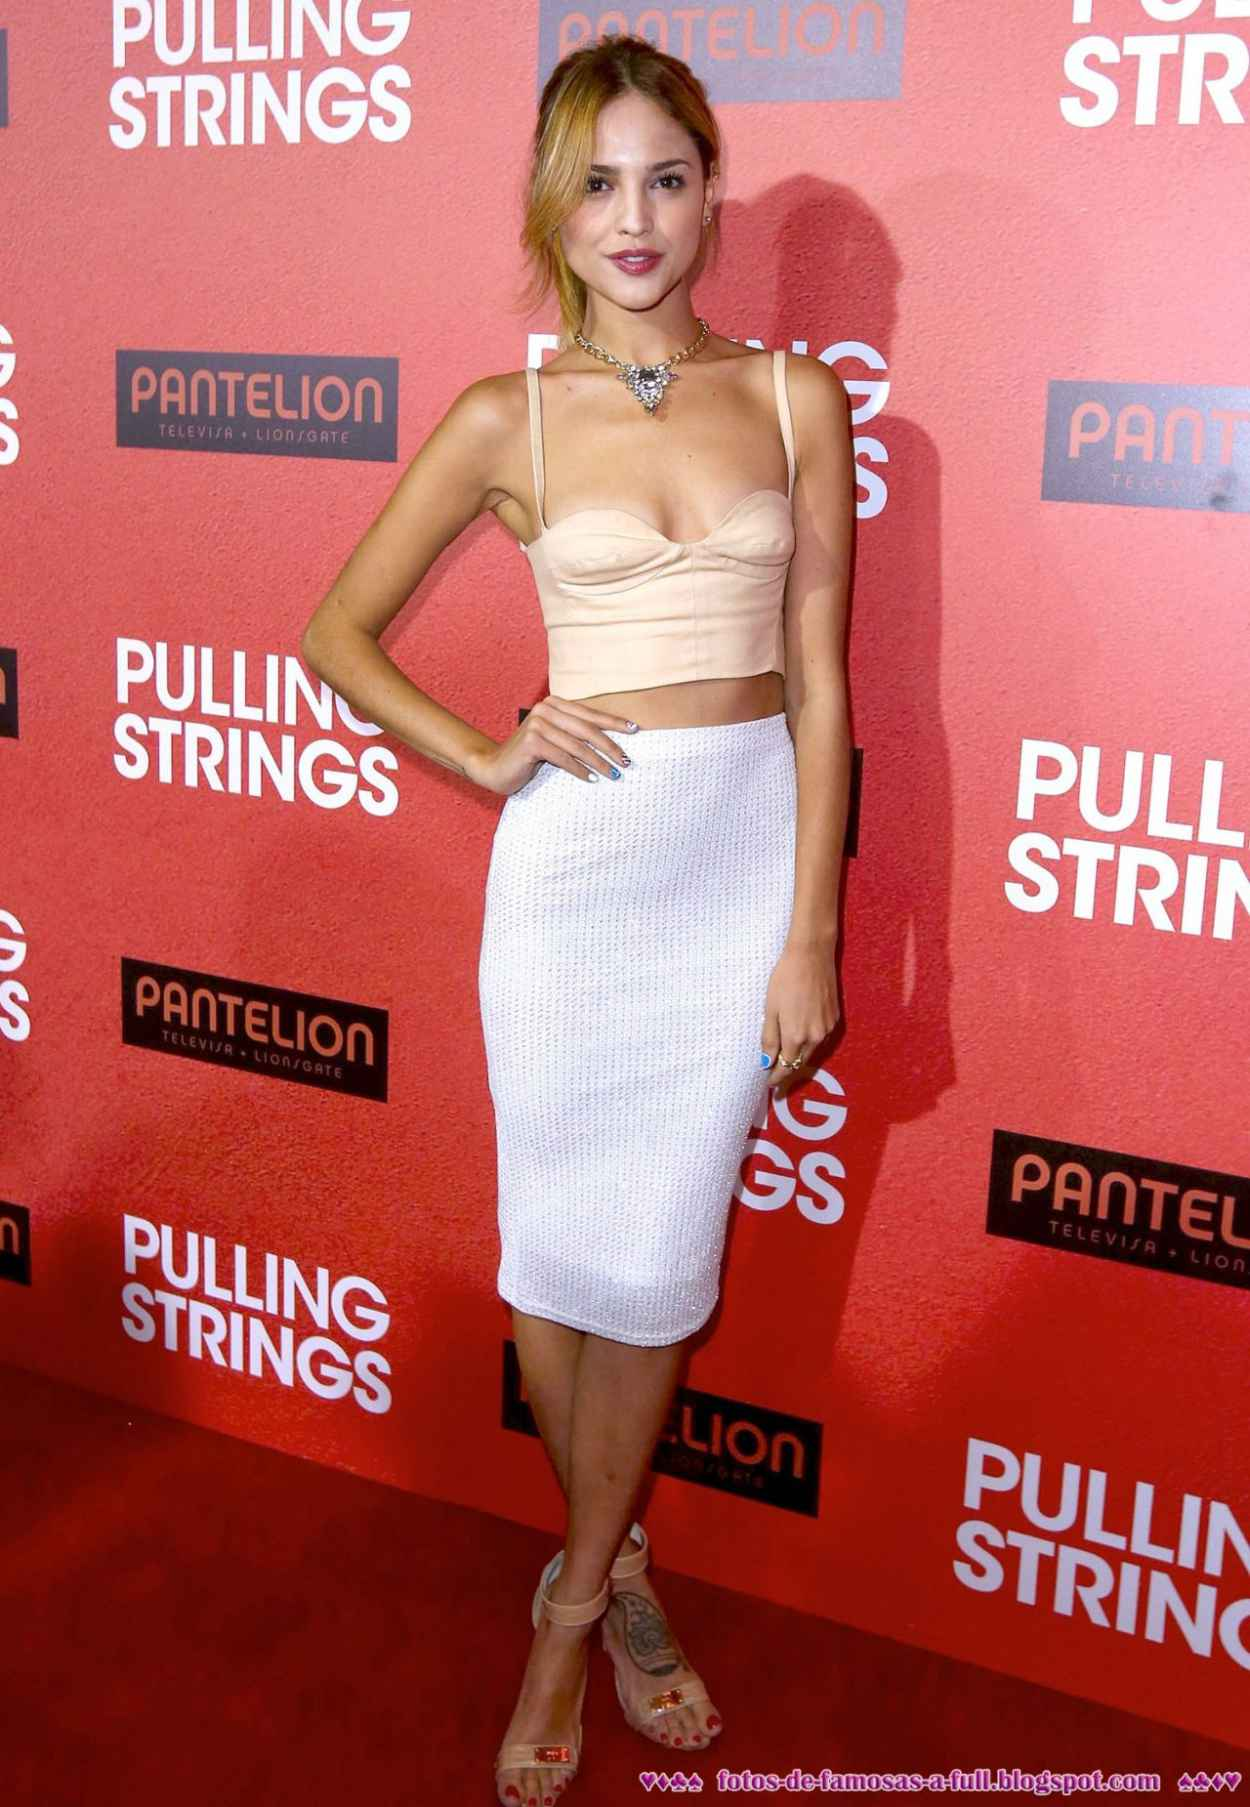 Eiza Gonzalez on Red Carpet - PULLING STRINGS Premiere in Los Angeles-1